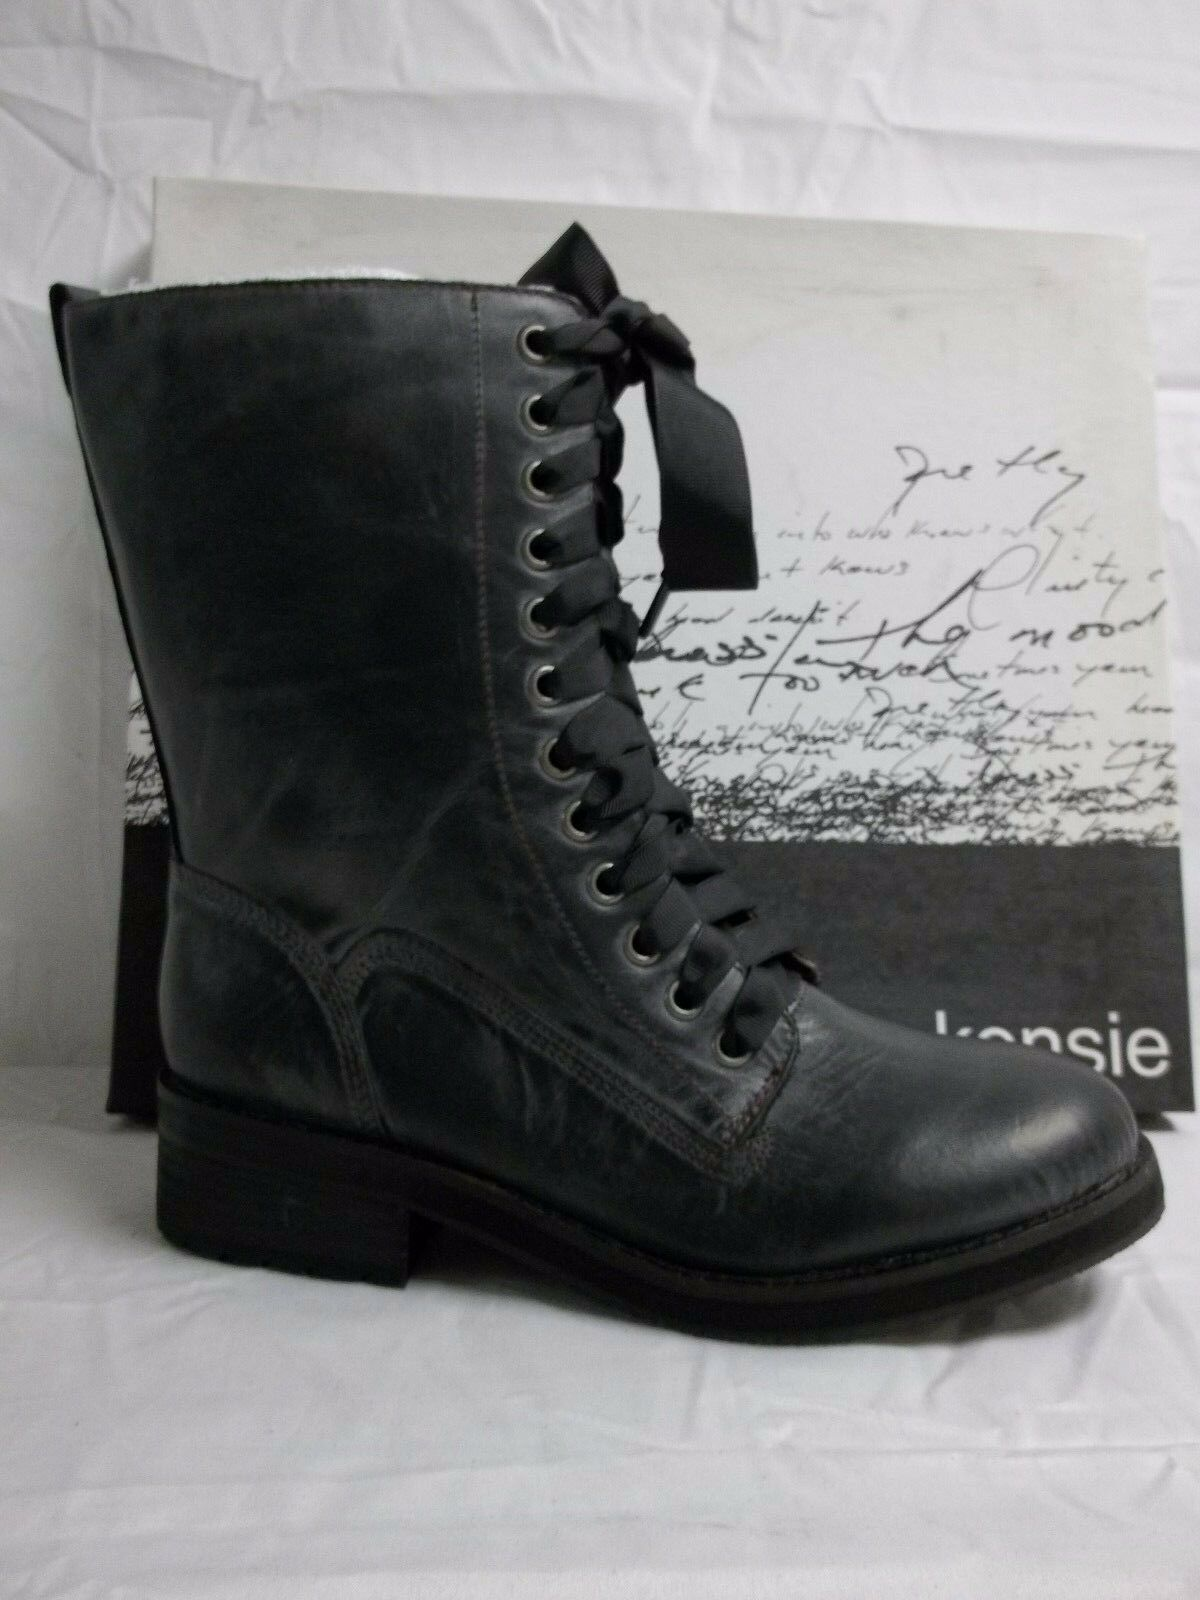 Kensie Size 6 M Boss Black Leather Ankle Boots New Womens Shoes